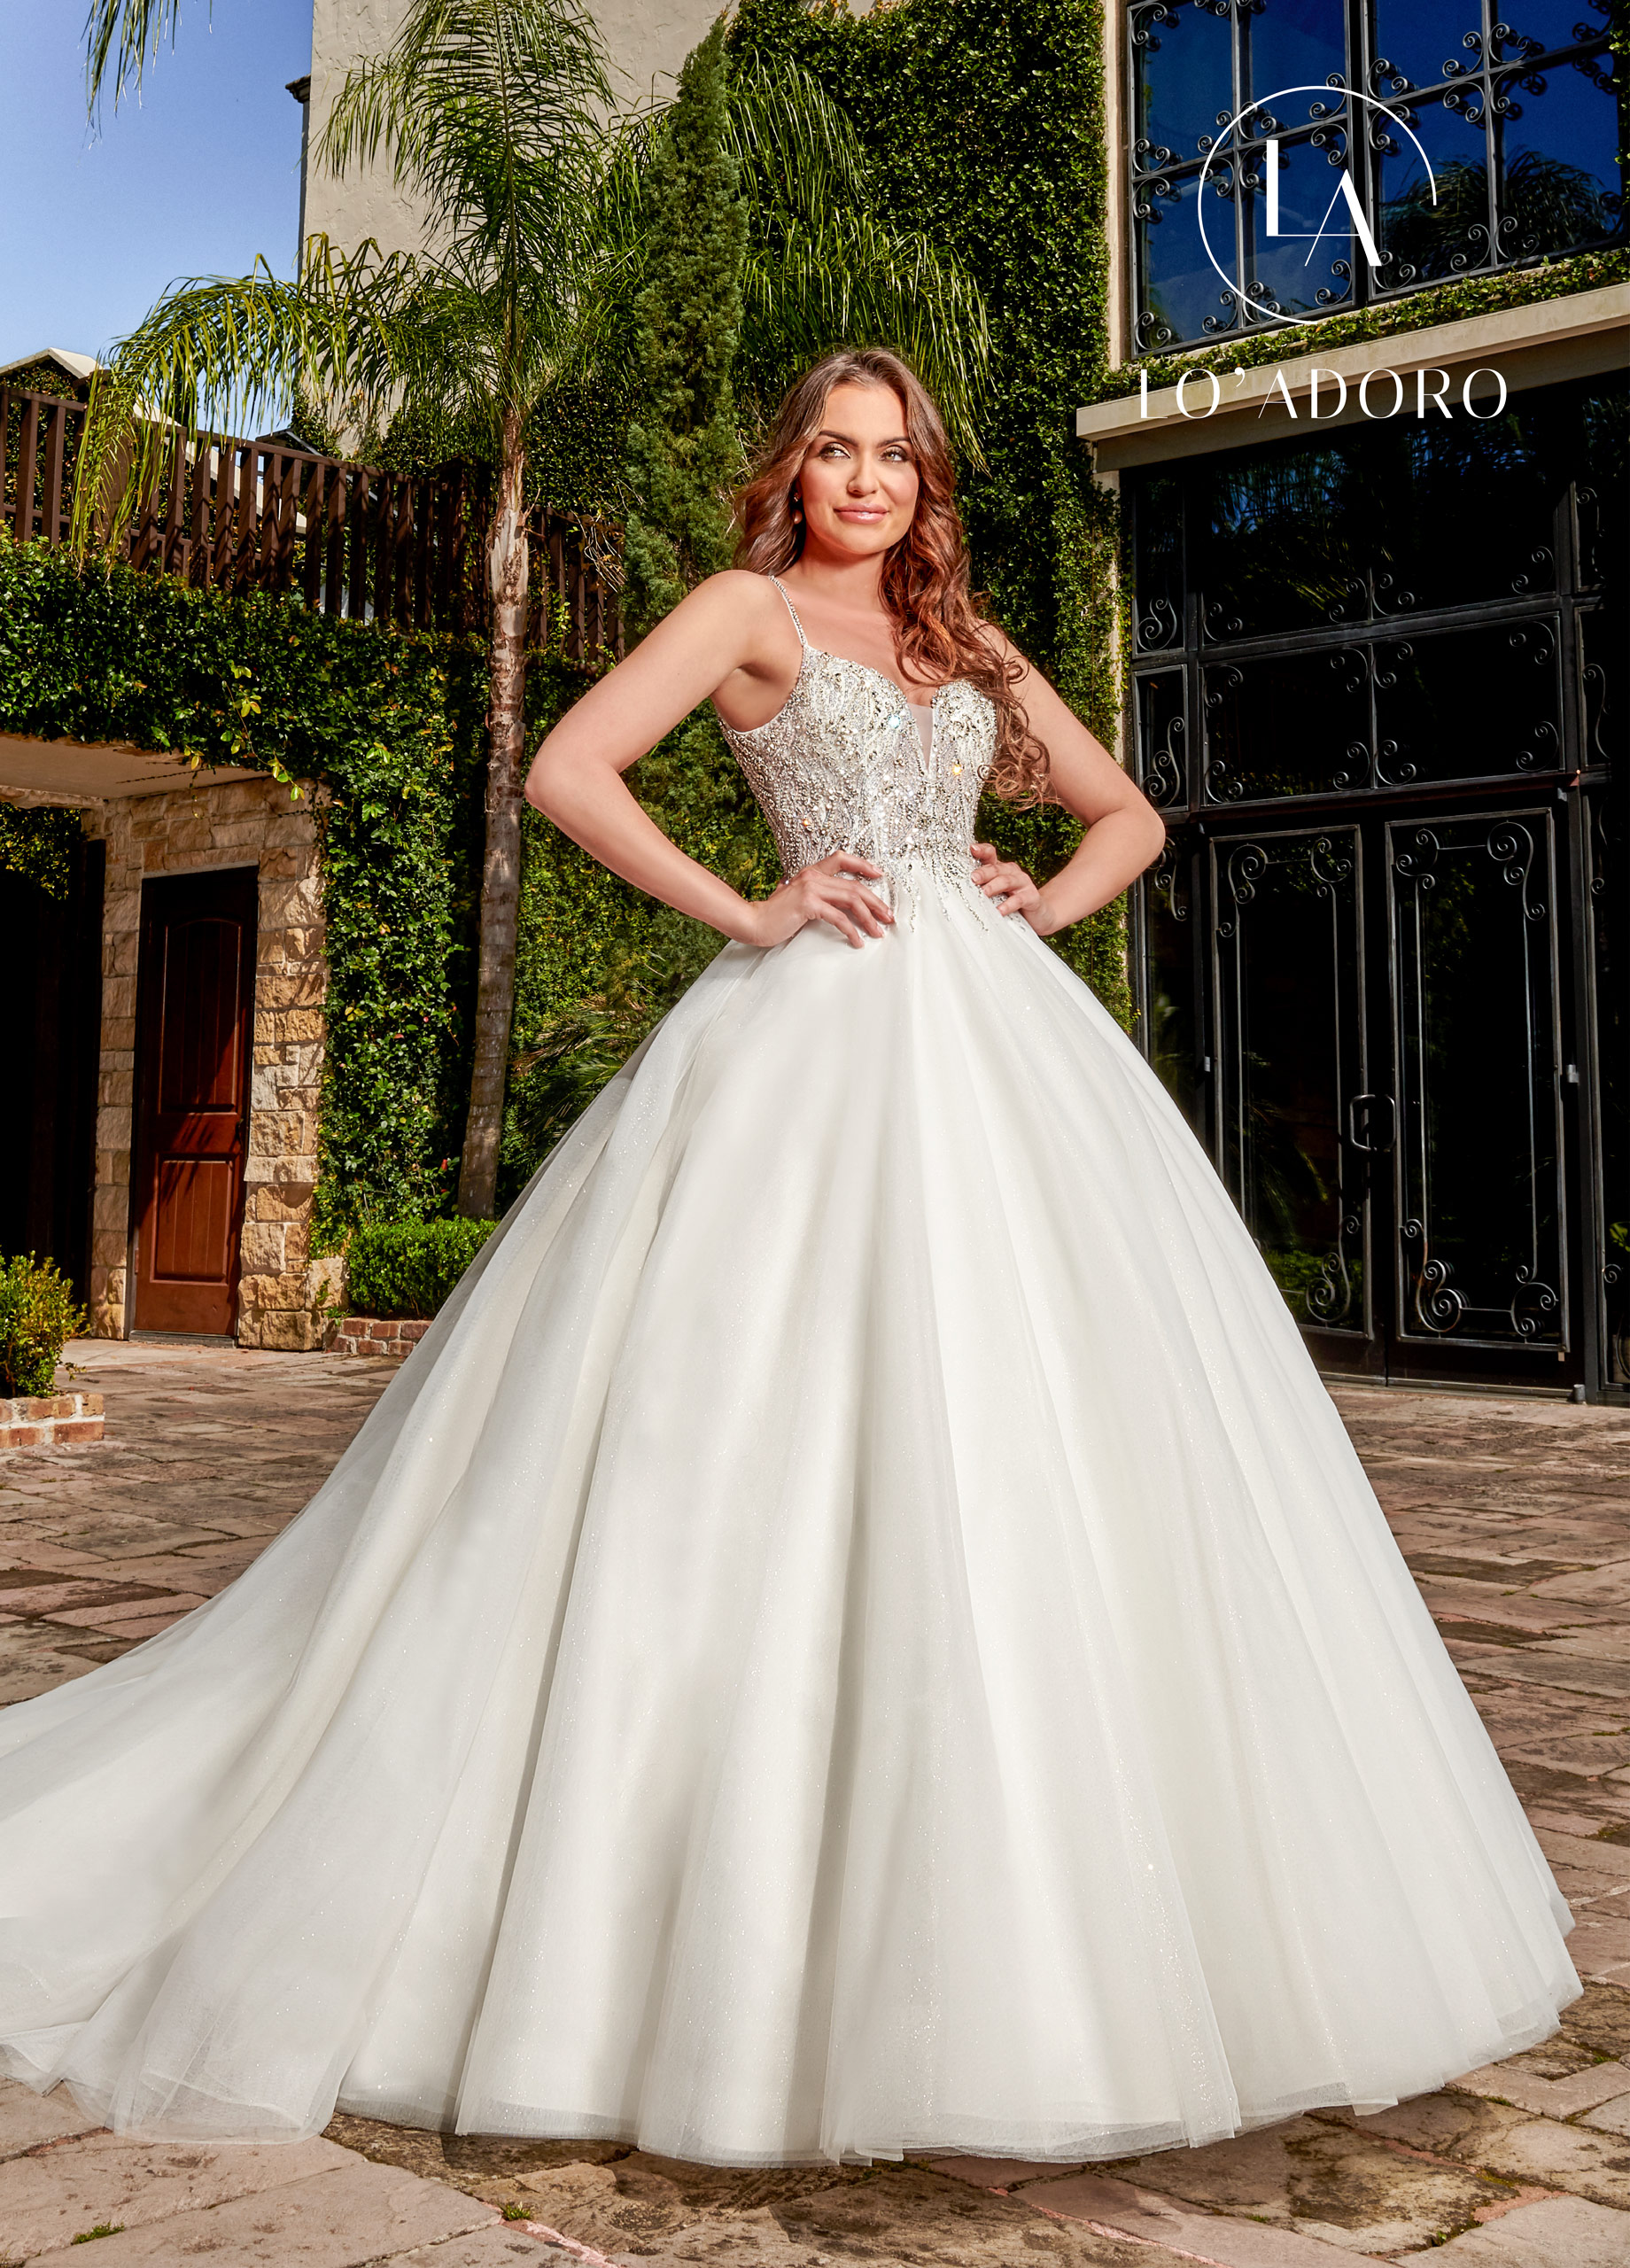 Strappy Ball Gowns Lo' Adoro Bridal in Ivory Color